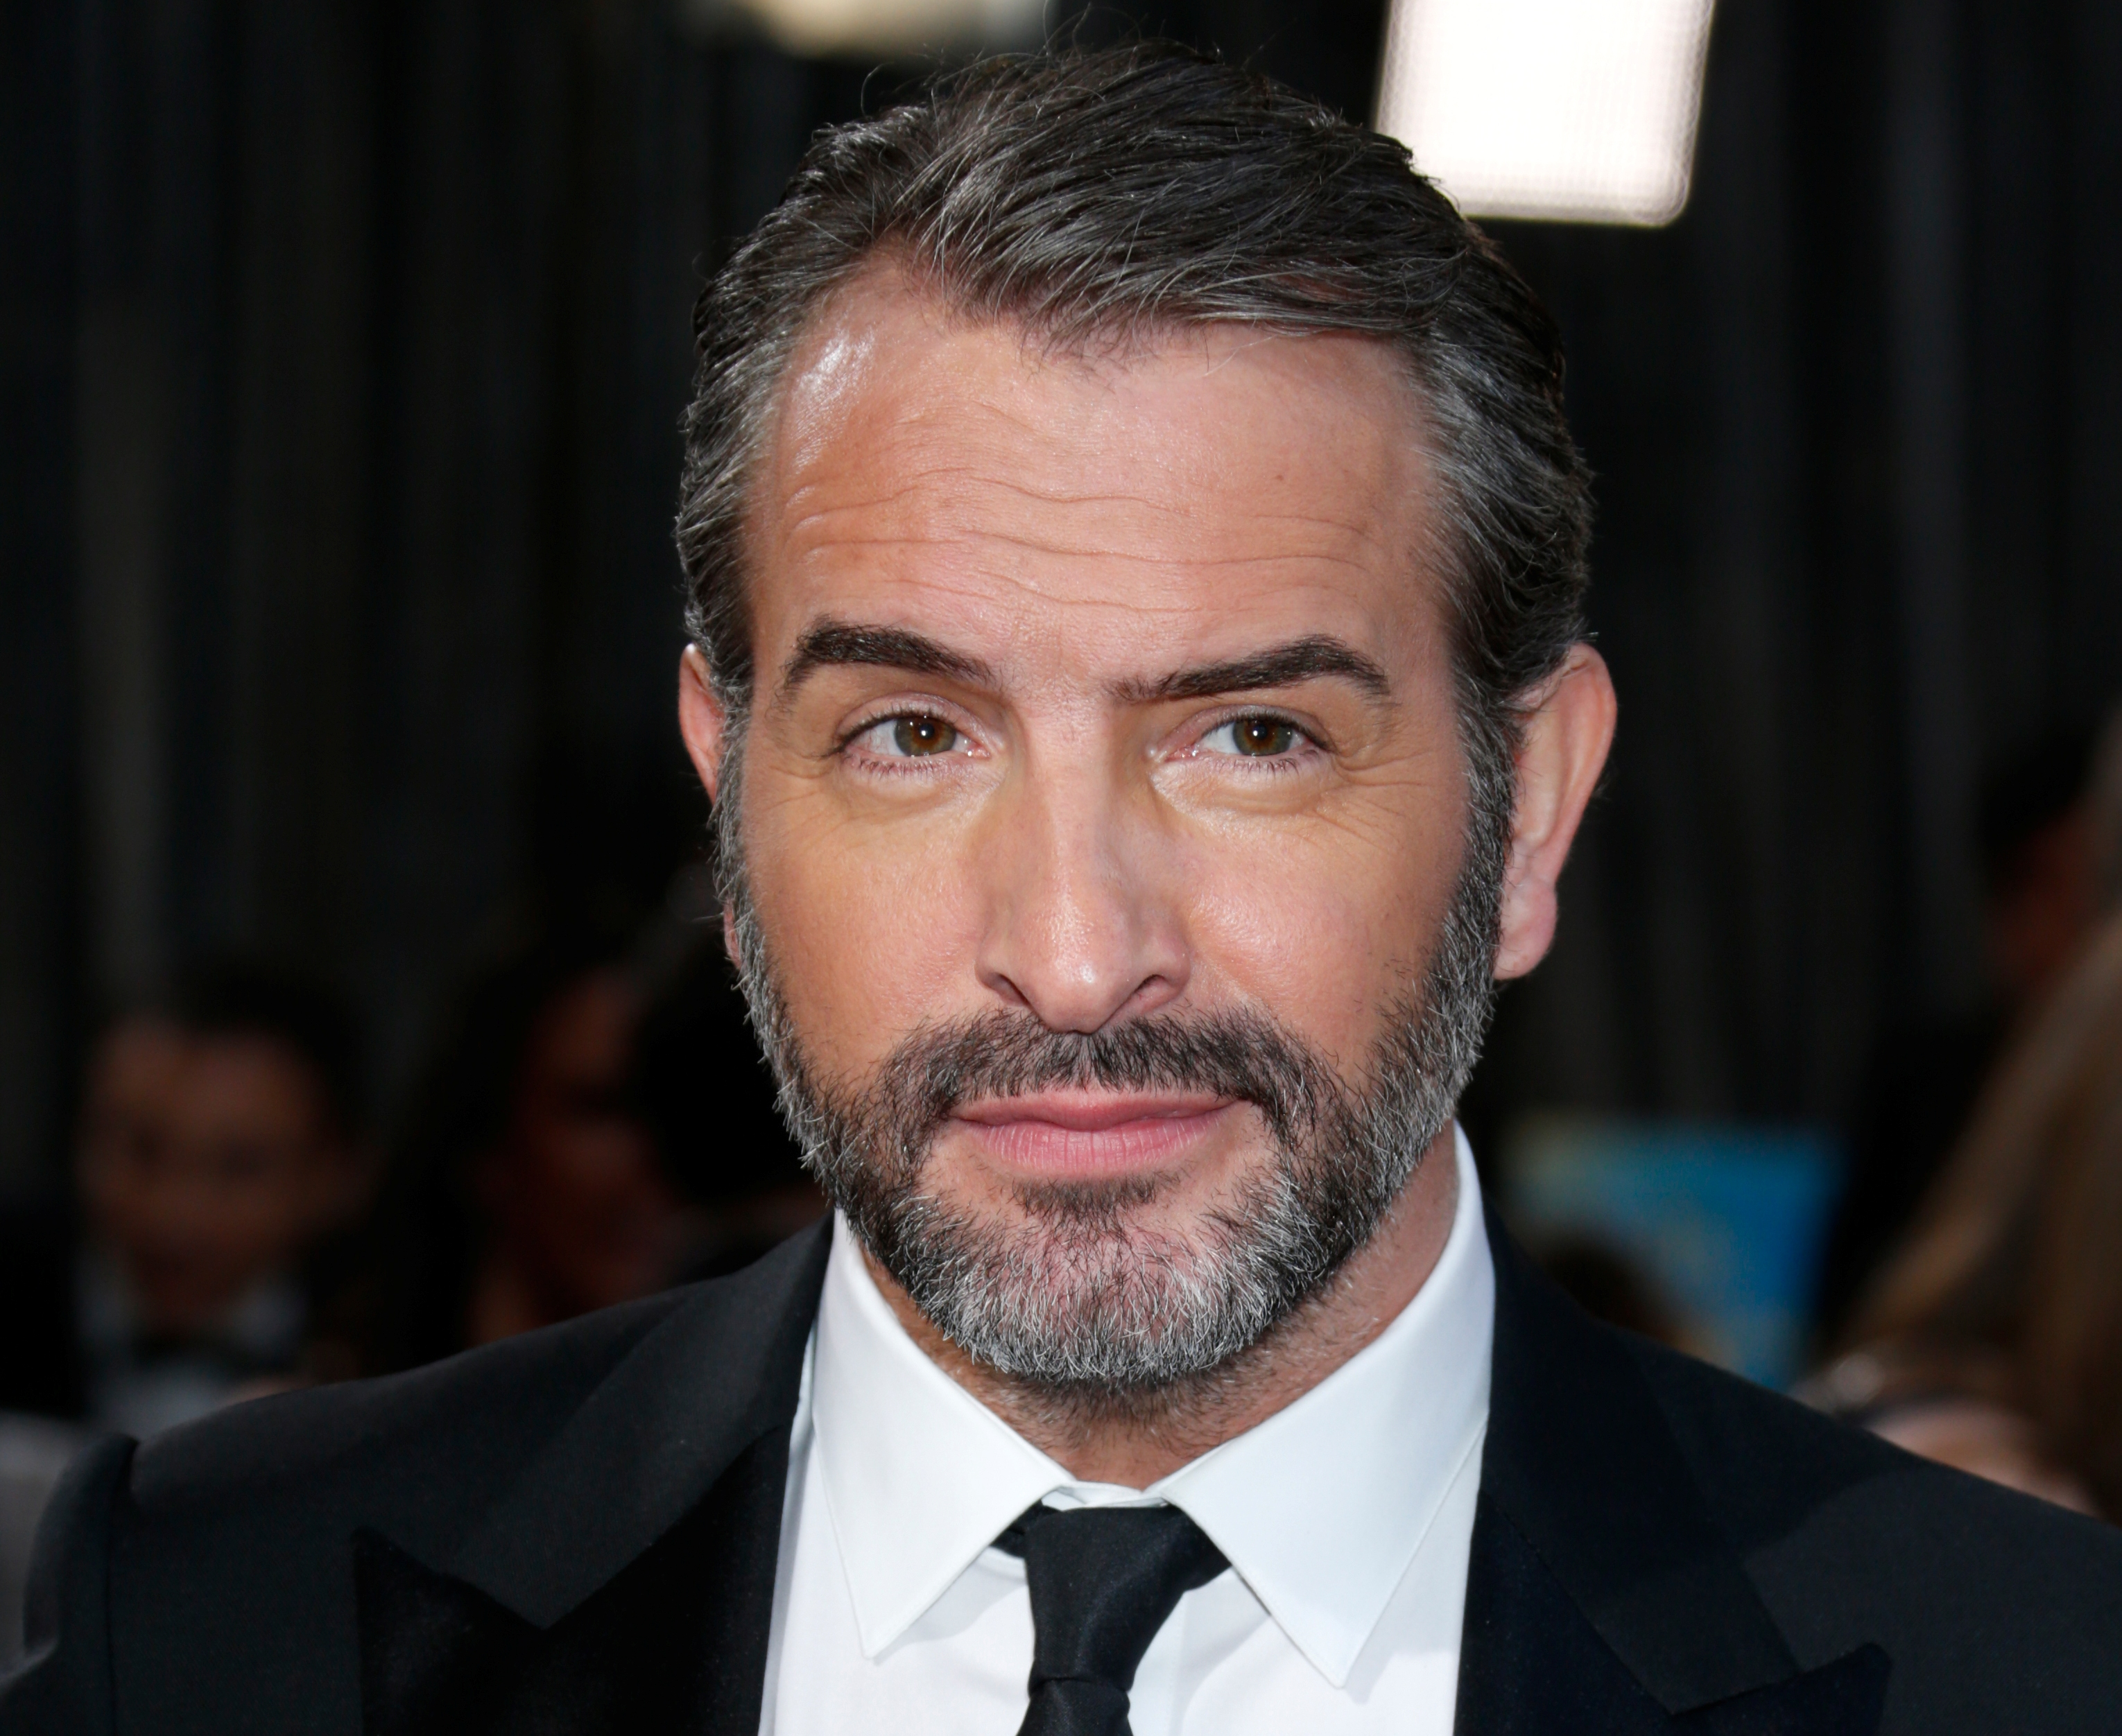 Jean dujardin wallpapers images photos pictures backgrounds for Jean dujardin 2017